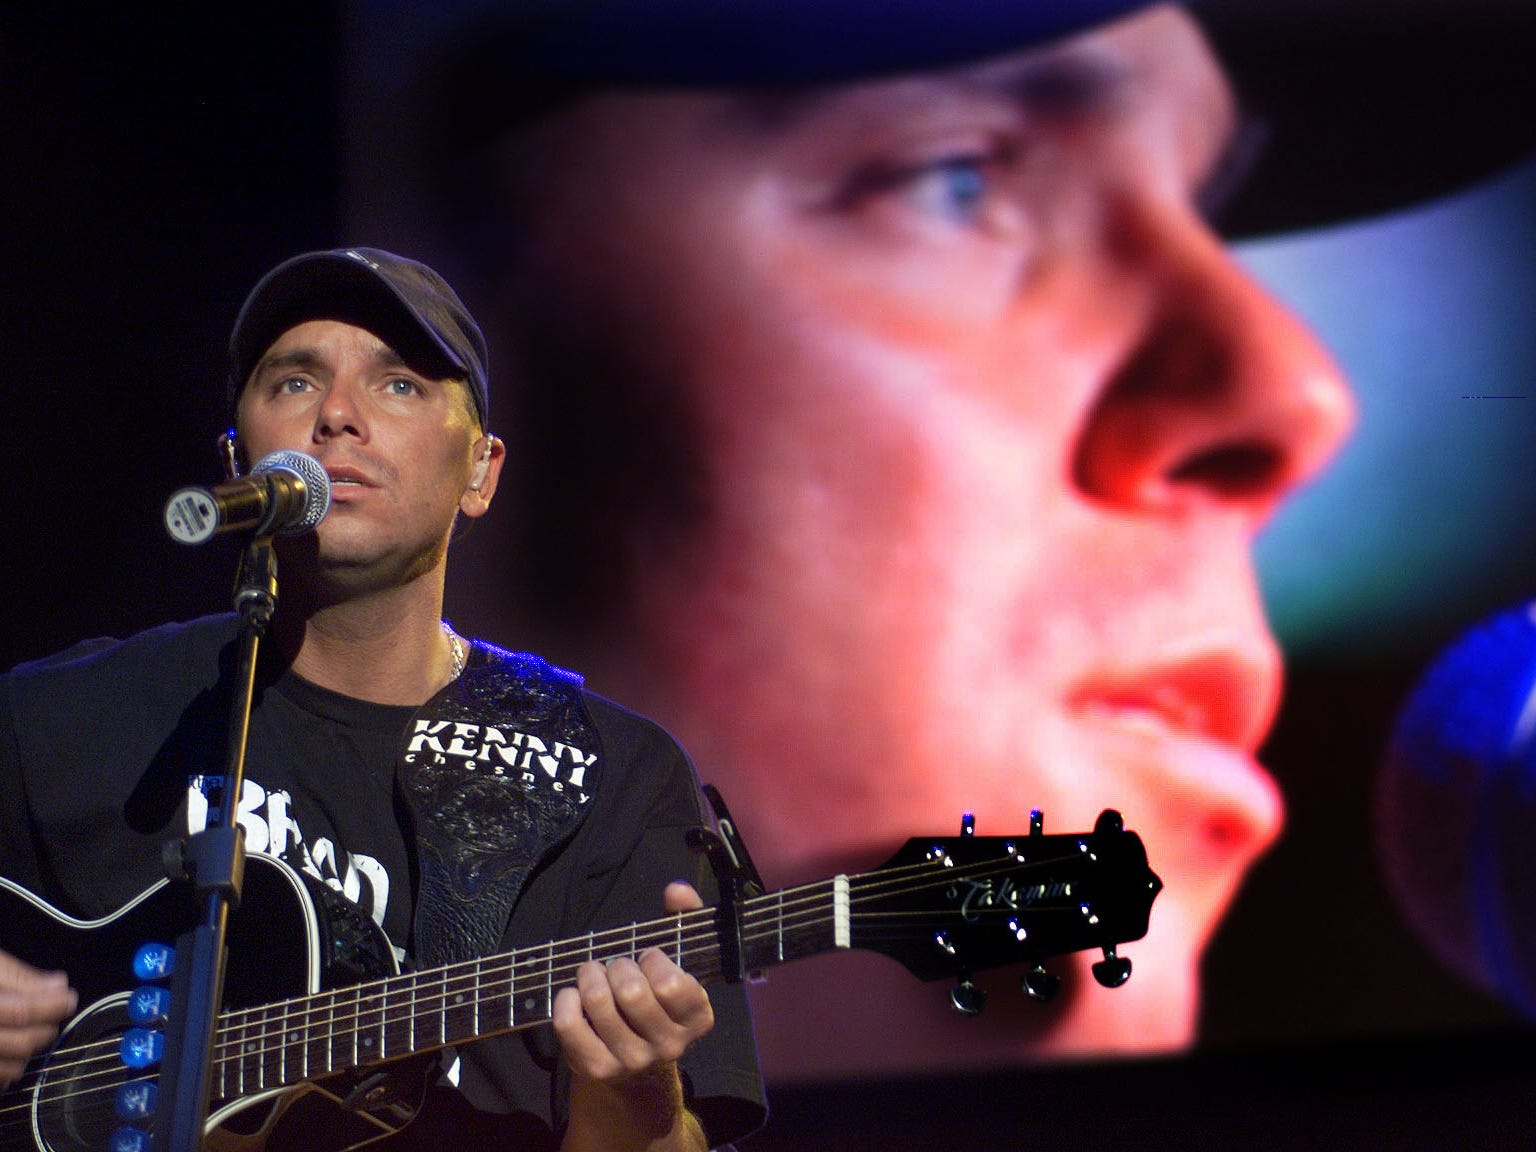 """Kenny Chesney performs a sound check during his Greatest Hits Tour Friday, Feb. 15, 2000, at Thompson-Boling Arena. The singer says he feels no special pressure in performing in his hometown. """"Actually, I'm more at ease. These people here, hopefully, are gonna love me even if I sing bad,"""" he said."""